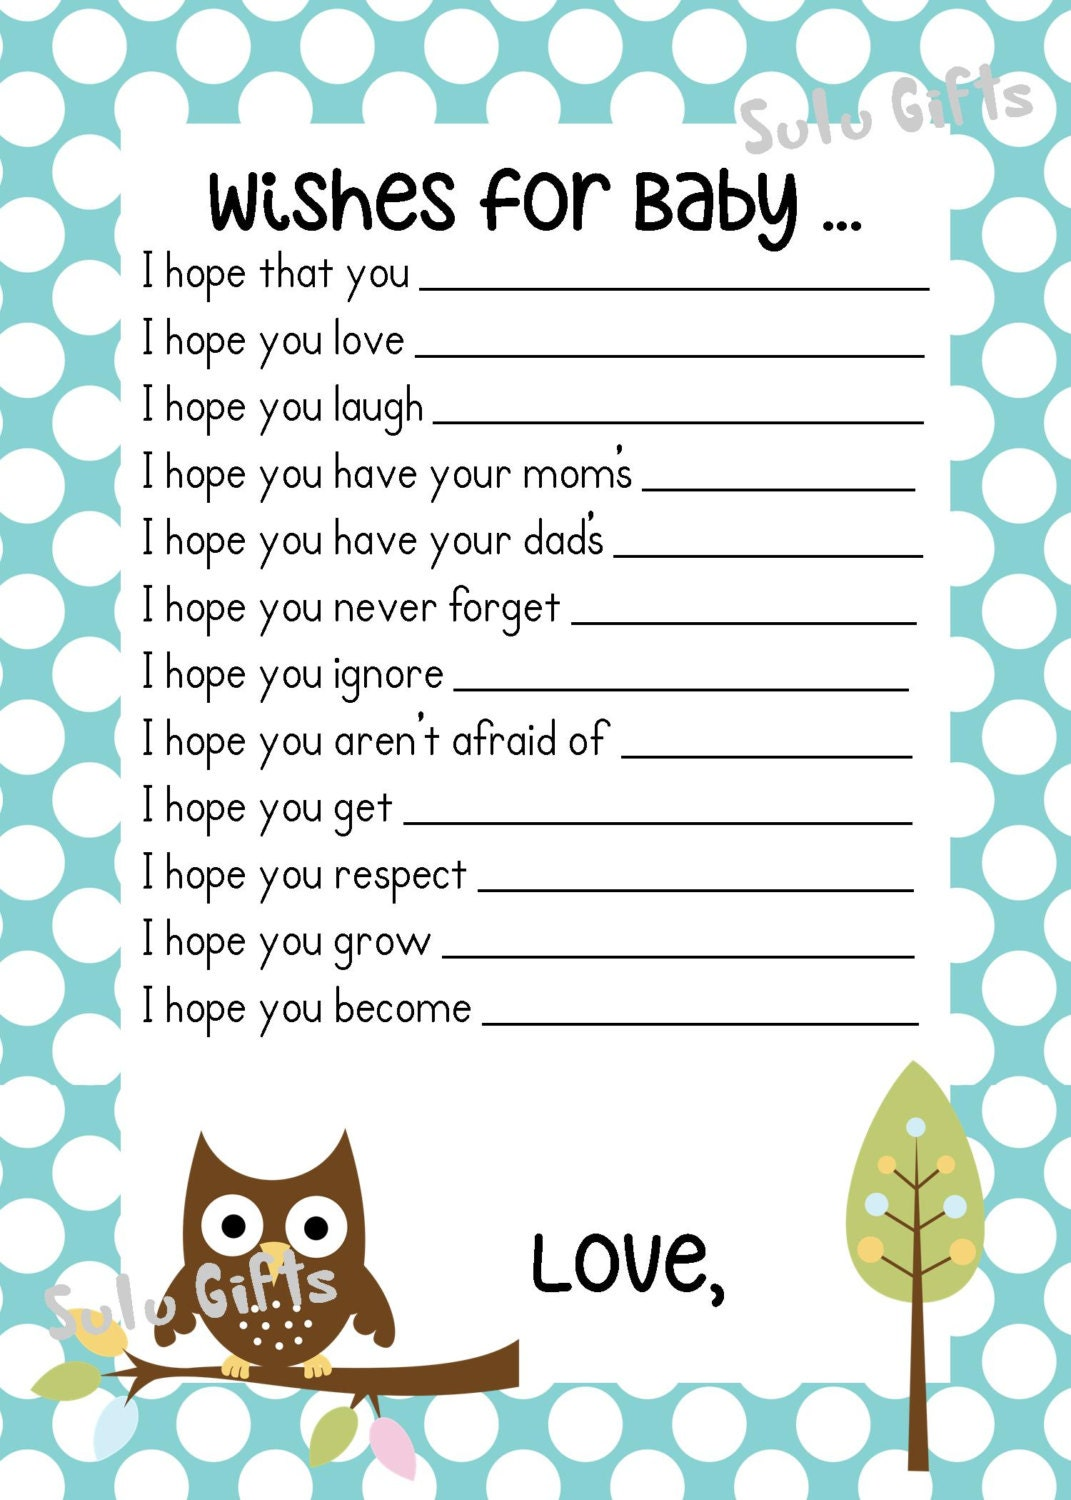 Sale Baby Boy Baby Owl Shower Game Wishes For Baby Advice Etsy